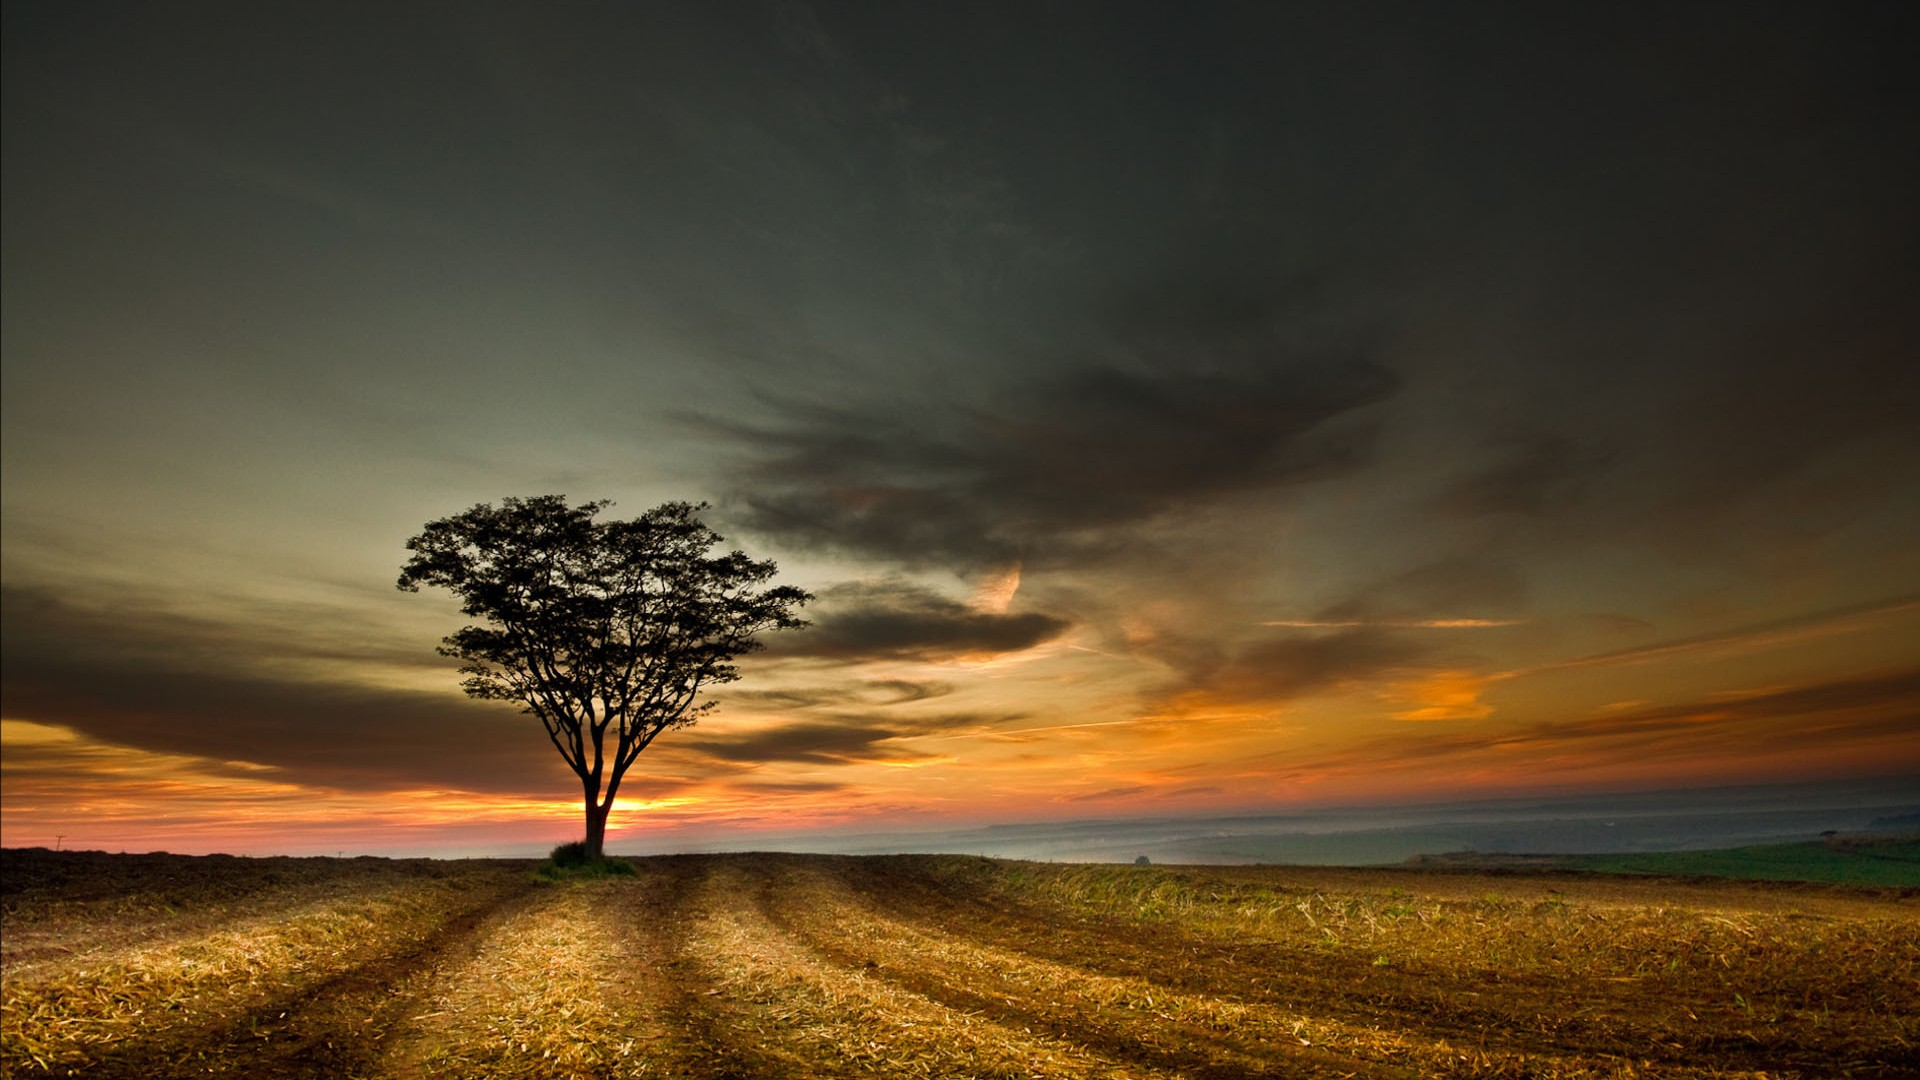 4k Wallpaper: 4K Lonely Tree Wallpapers High Quality